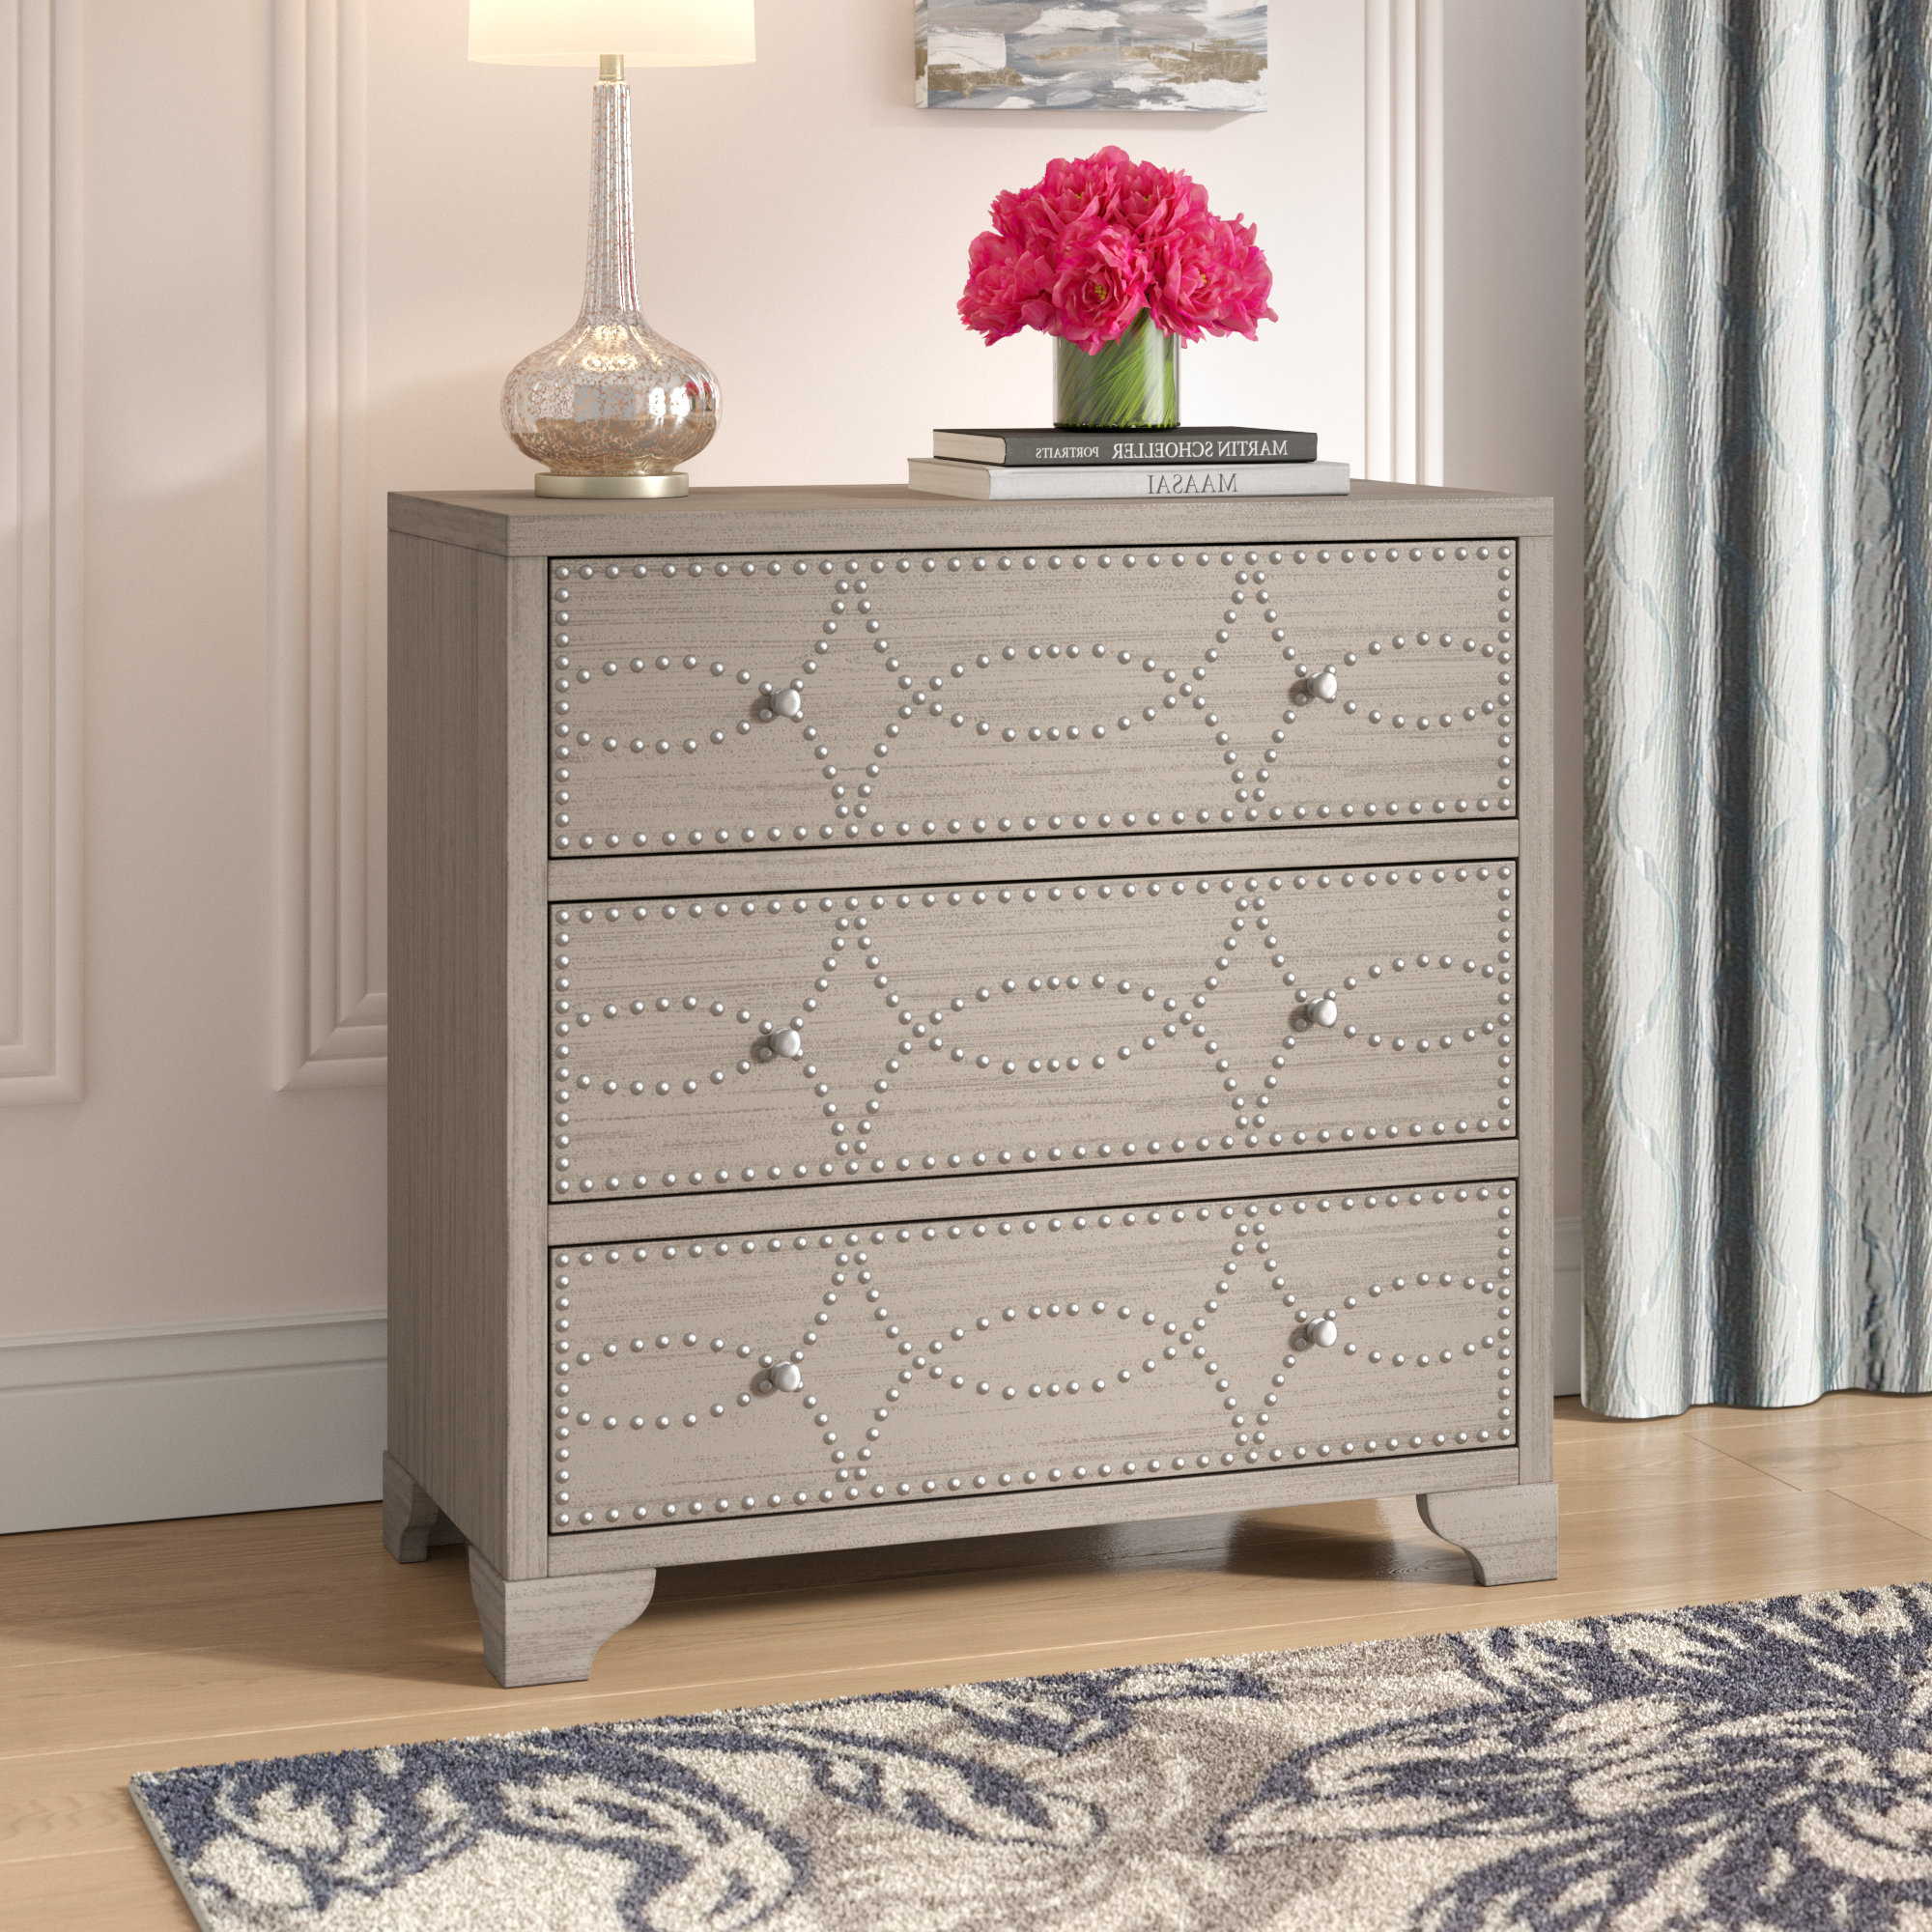 Birch Lane Pertaining To Most Popular Candice Ii Sideboards (View 12 of 20)